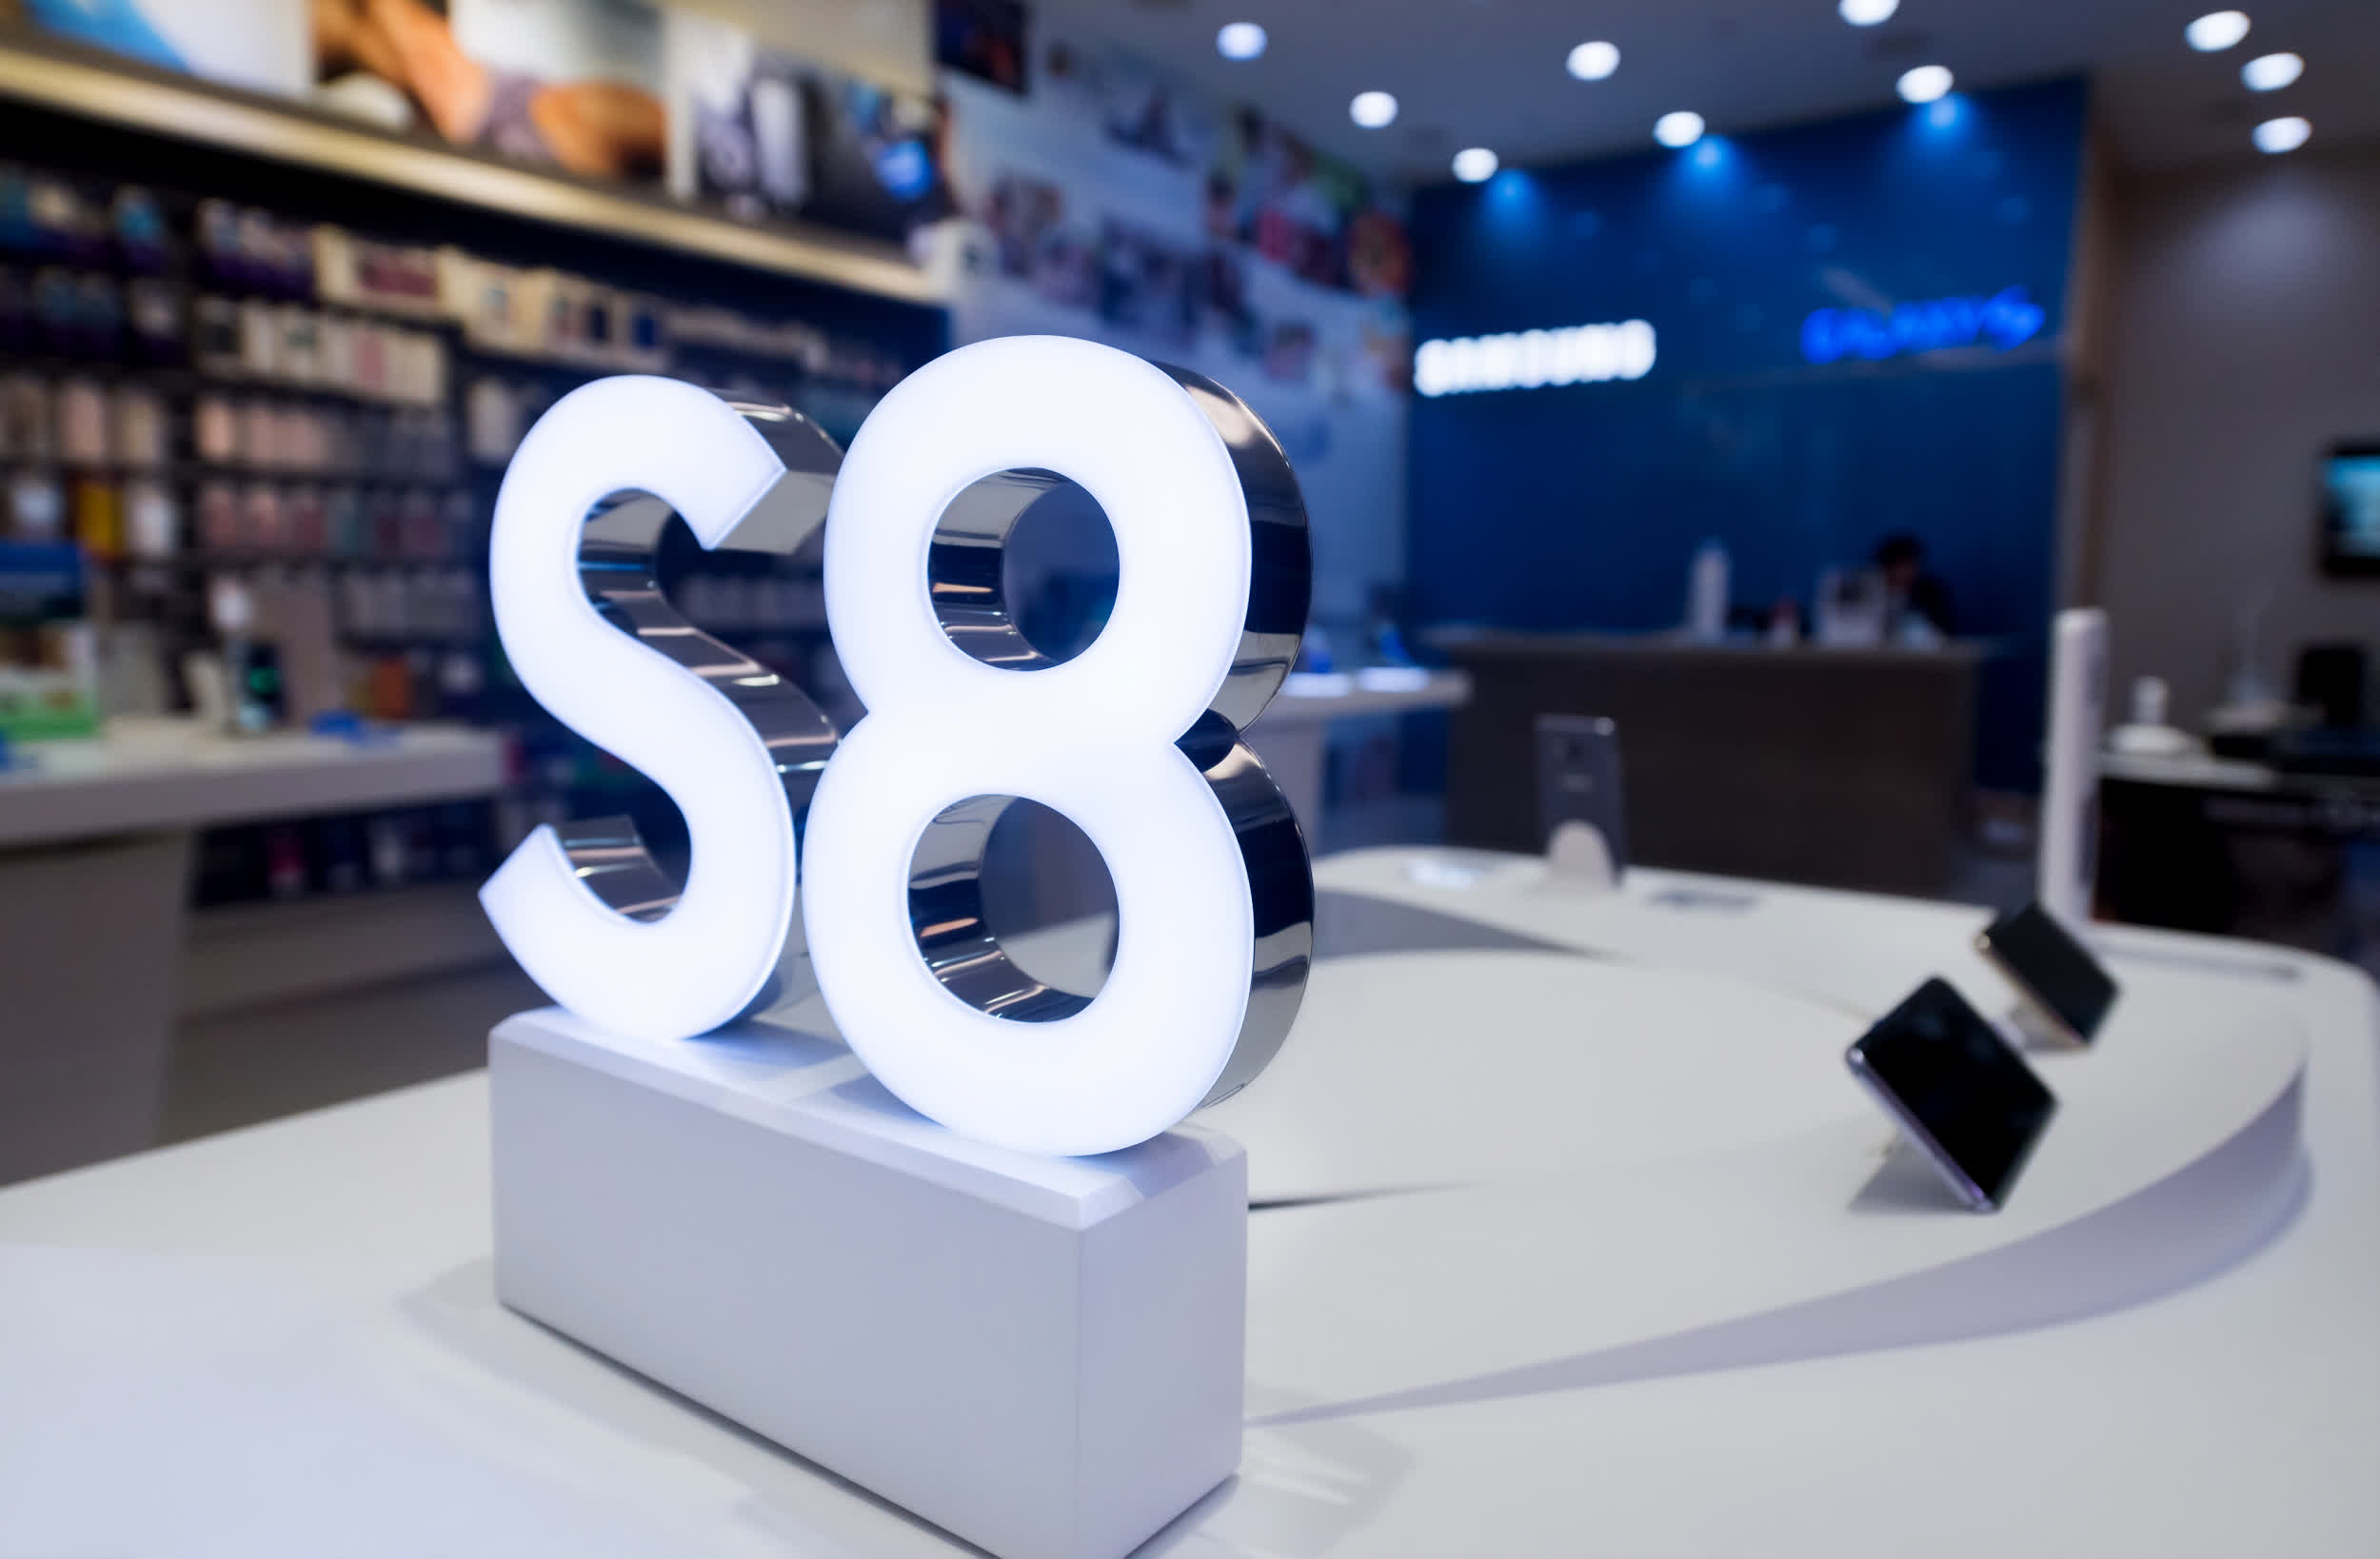 Samsung stops updating the Galaxy S8 after four years